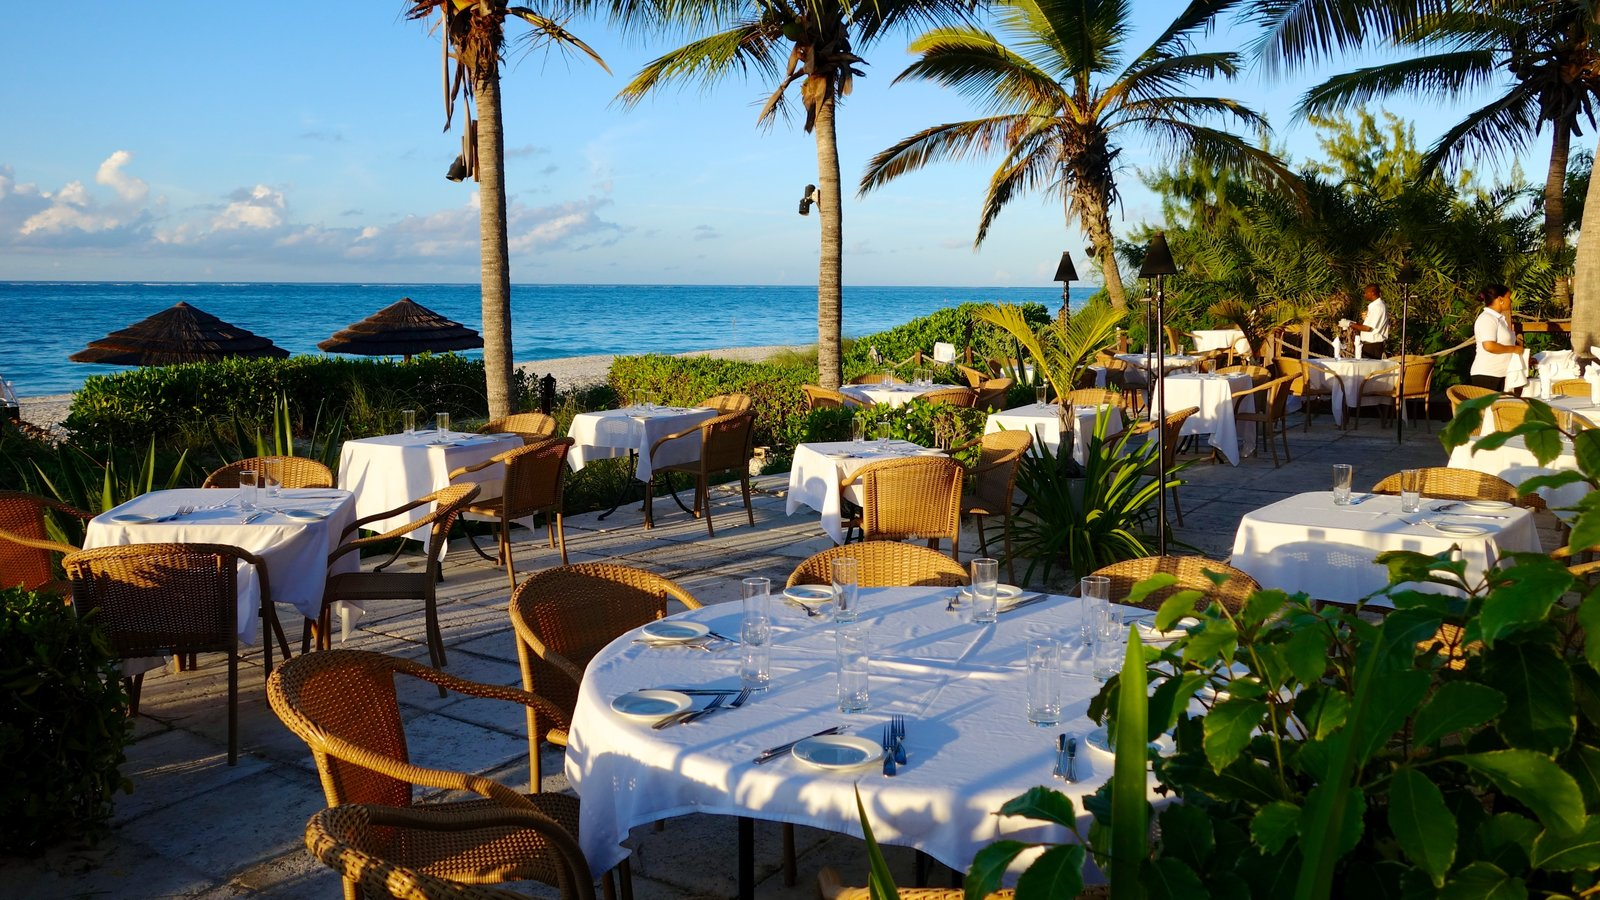 Grace Bay Beach featuring tropical scenes, general coastal views and outdoor eating